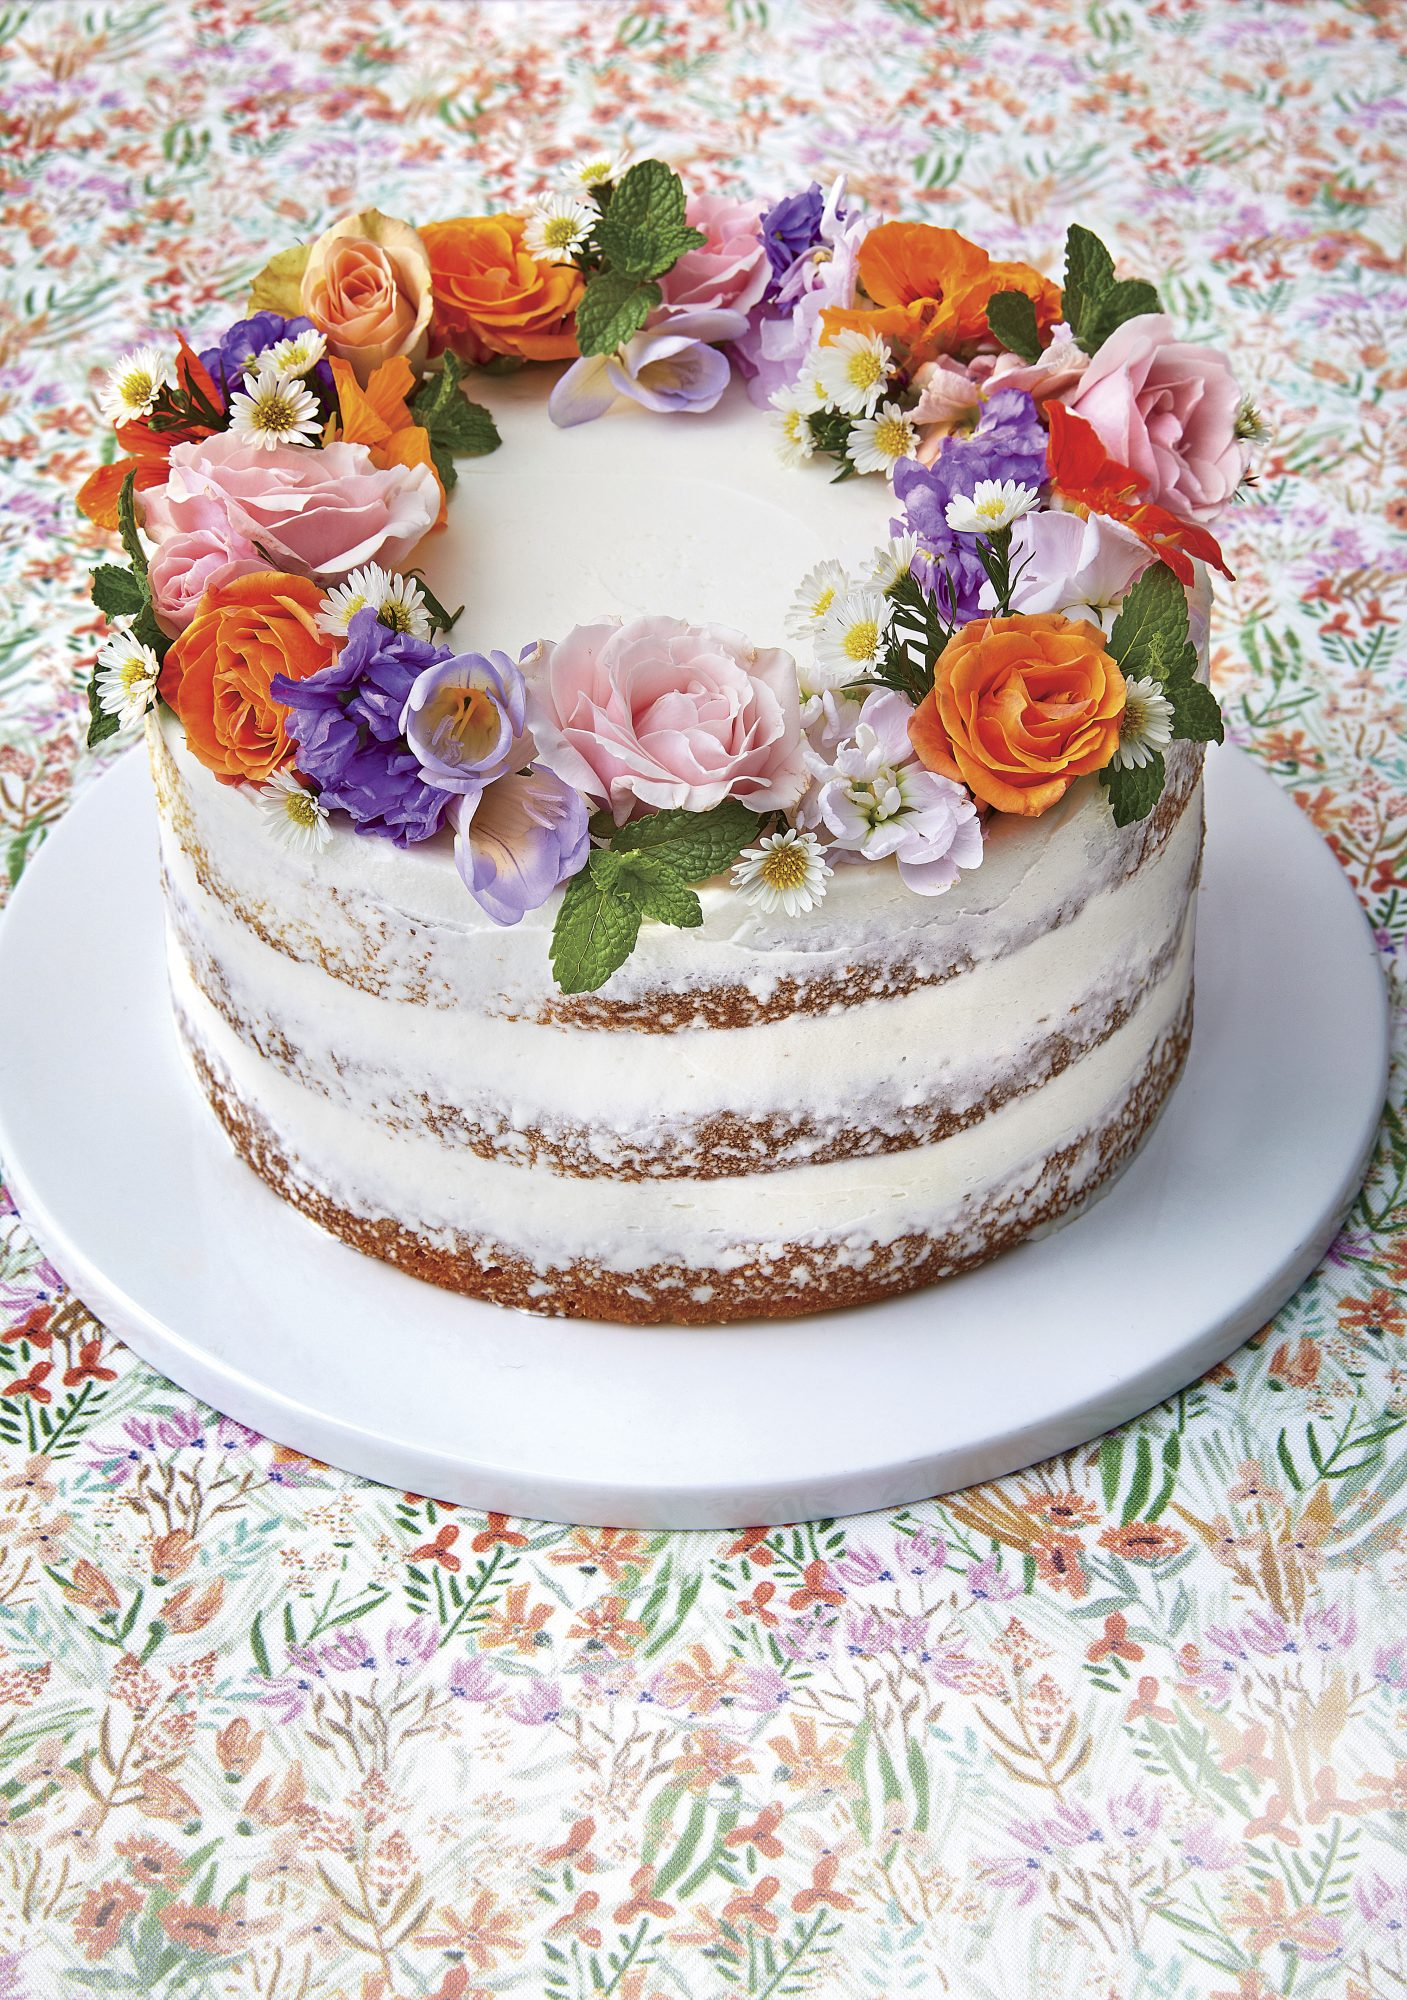 Naked Lemon Cake with Flower Crown